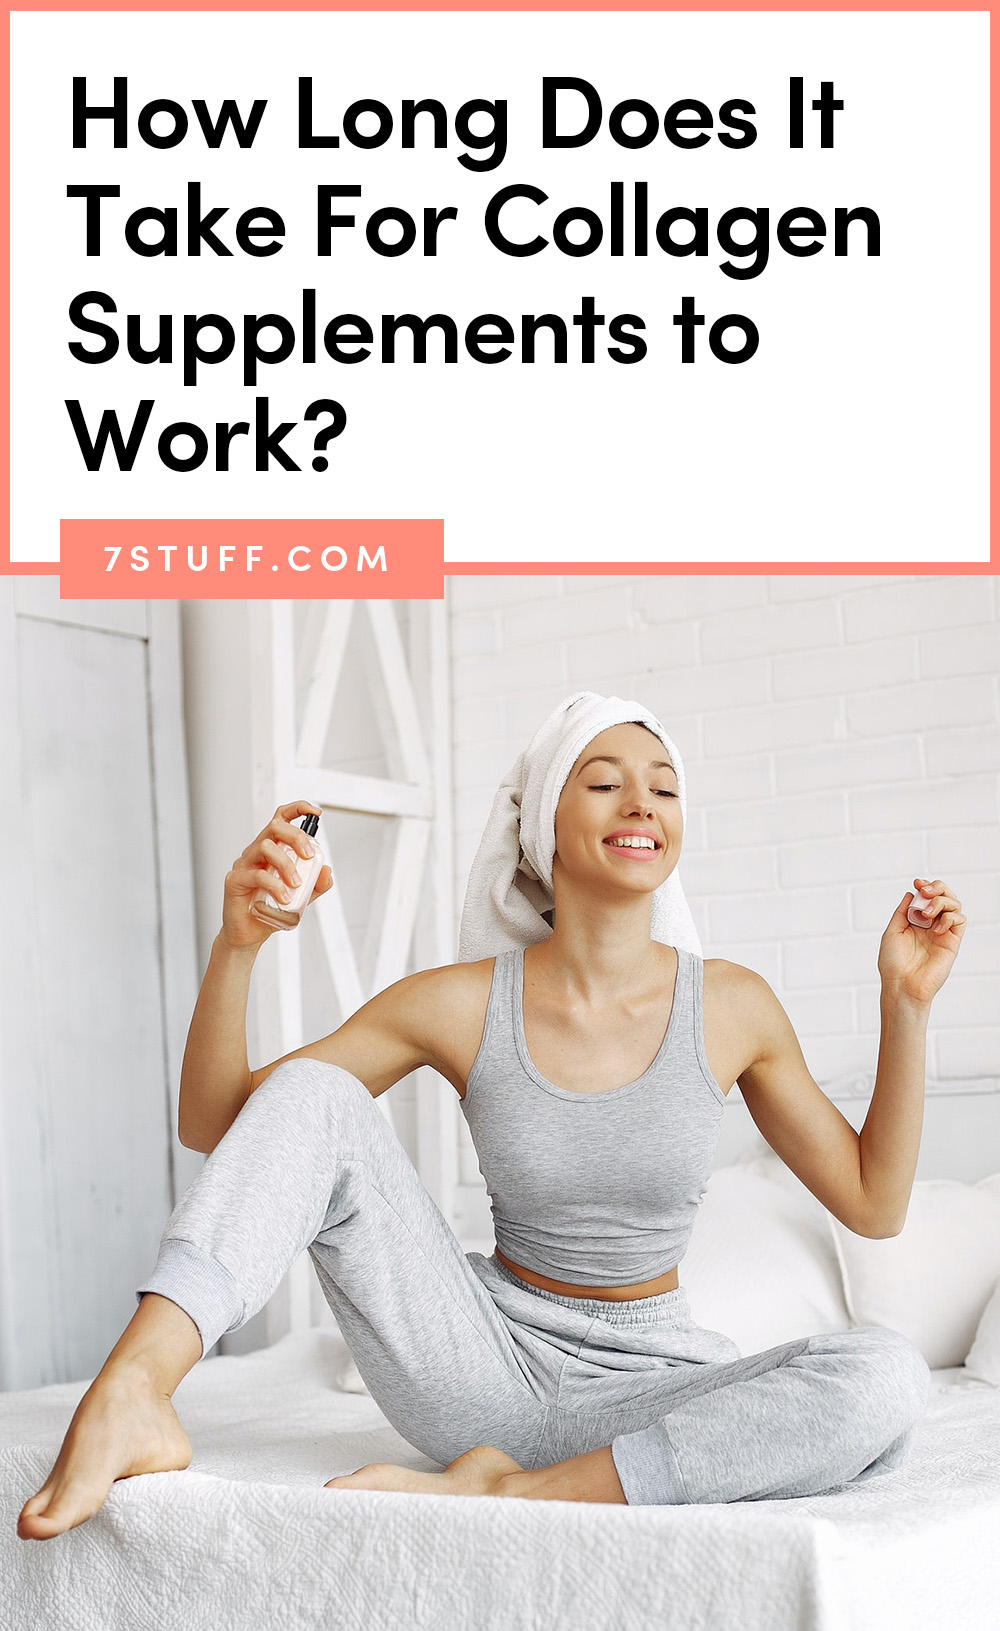 How Long Does It Take For Collagen Supplements to Work